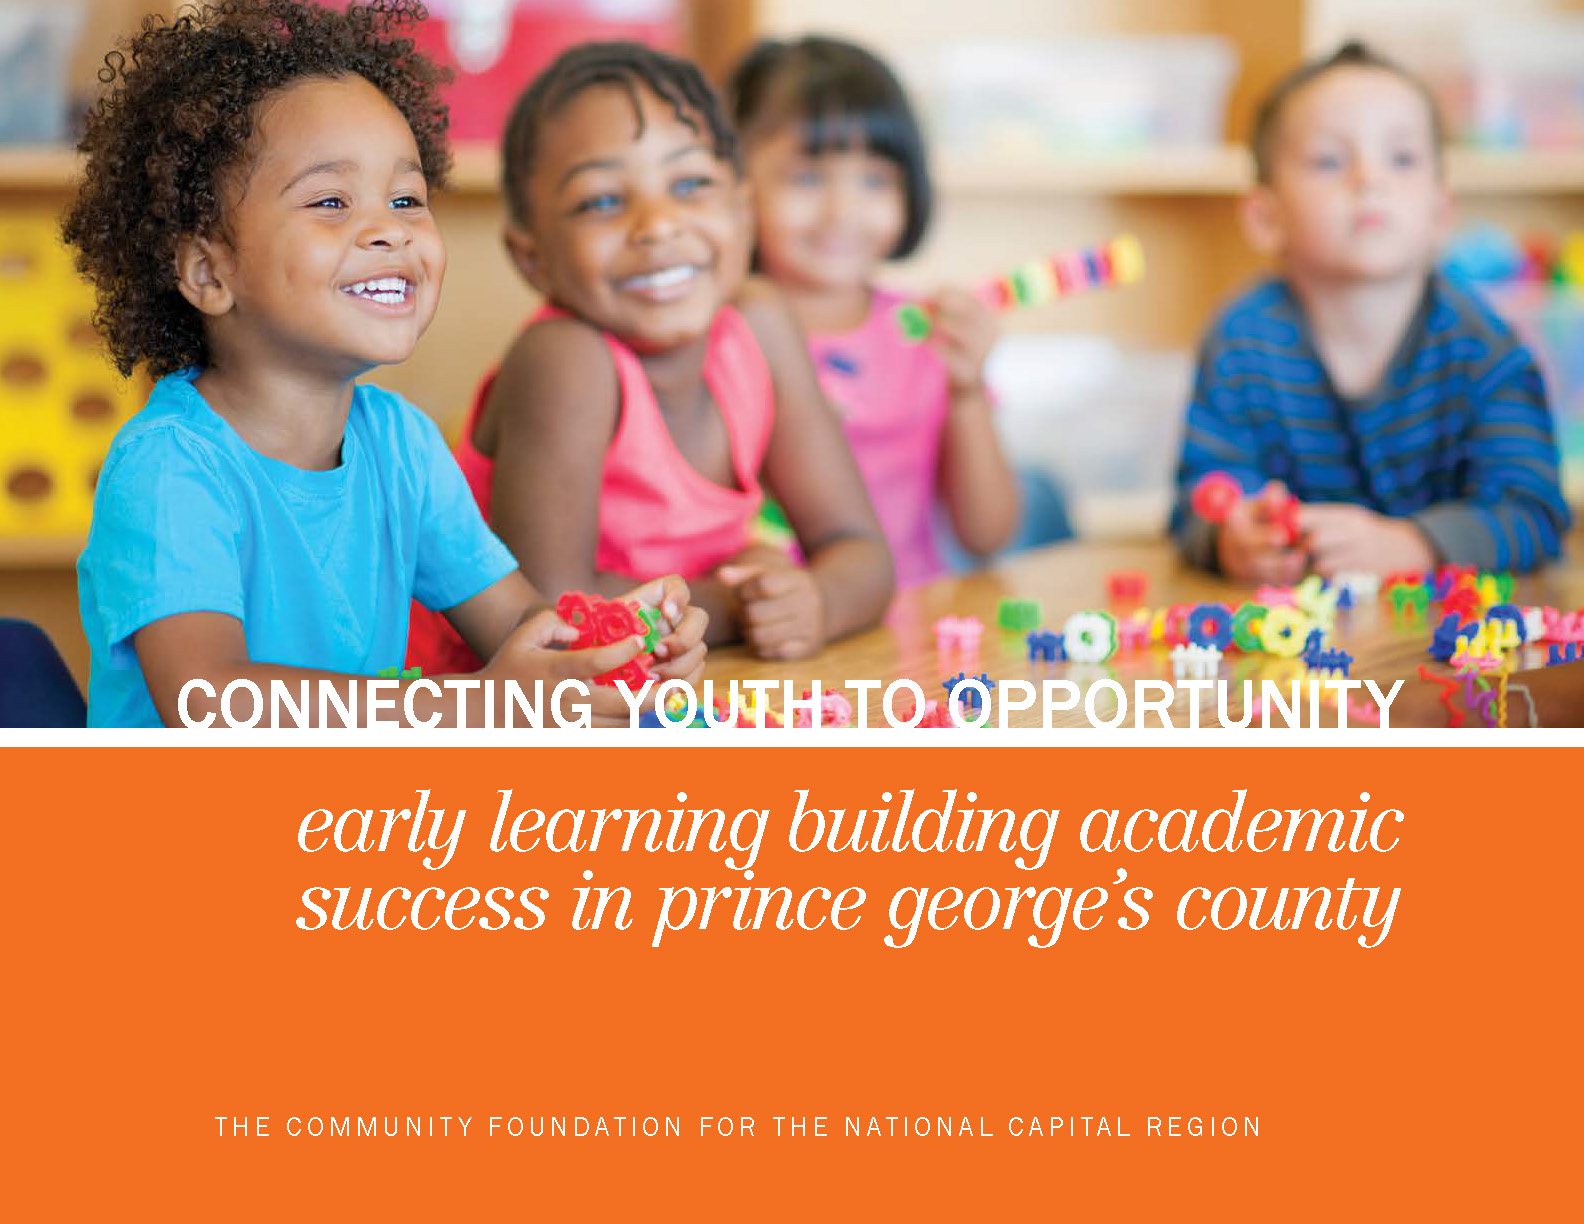 Pages from Early-Learning-Building-Academic-Success.jpg